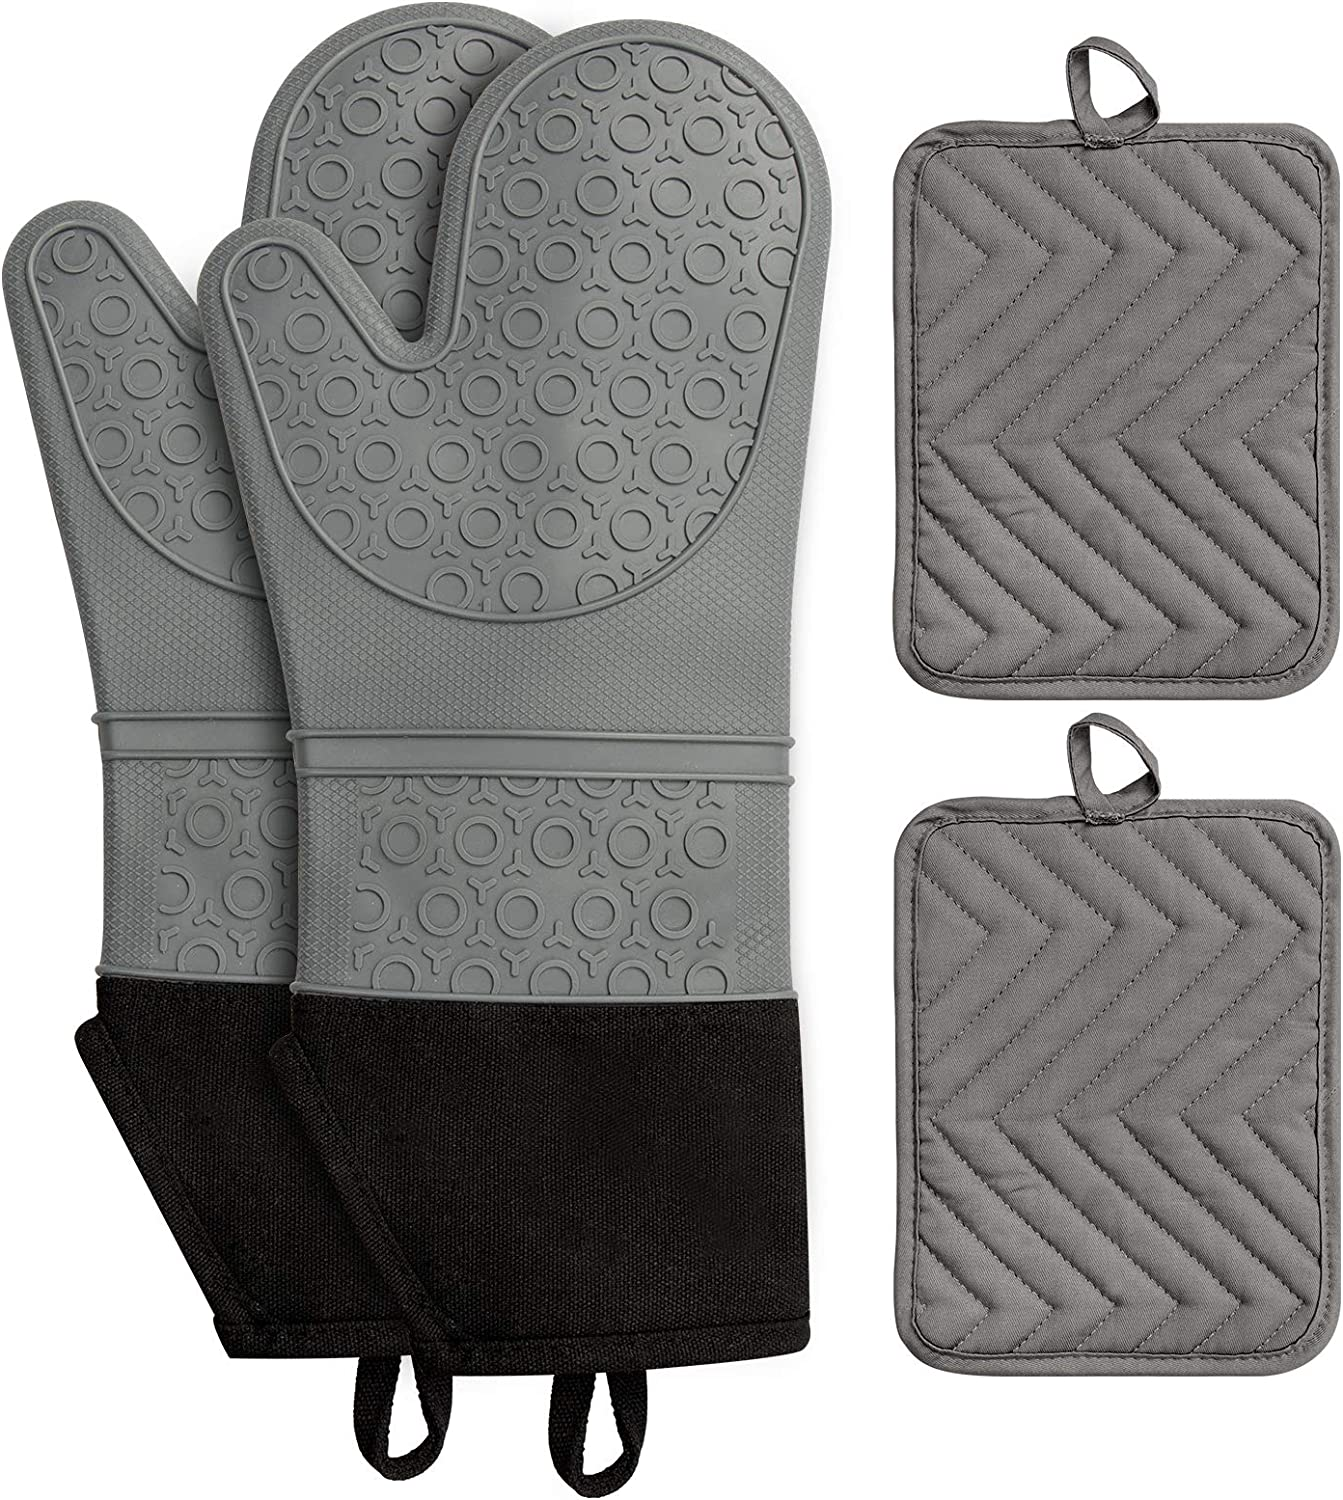 IMILLET Oven Mitts and Pot Holders Set, 4-Piece Set Silicone Heat Resistant Oven Mitts, Extra Long Oven Gloves, Oven Mitts and Pot Pads Kitchen Gloves with No-Slip Flexible for Baking Cooking Grey